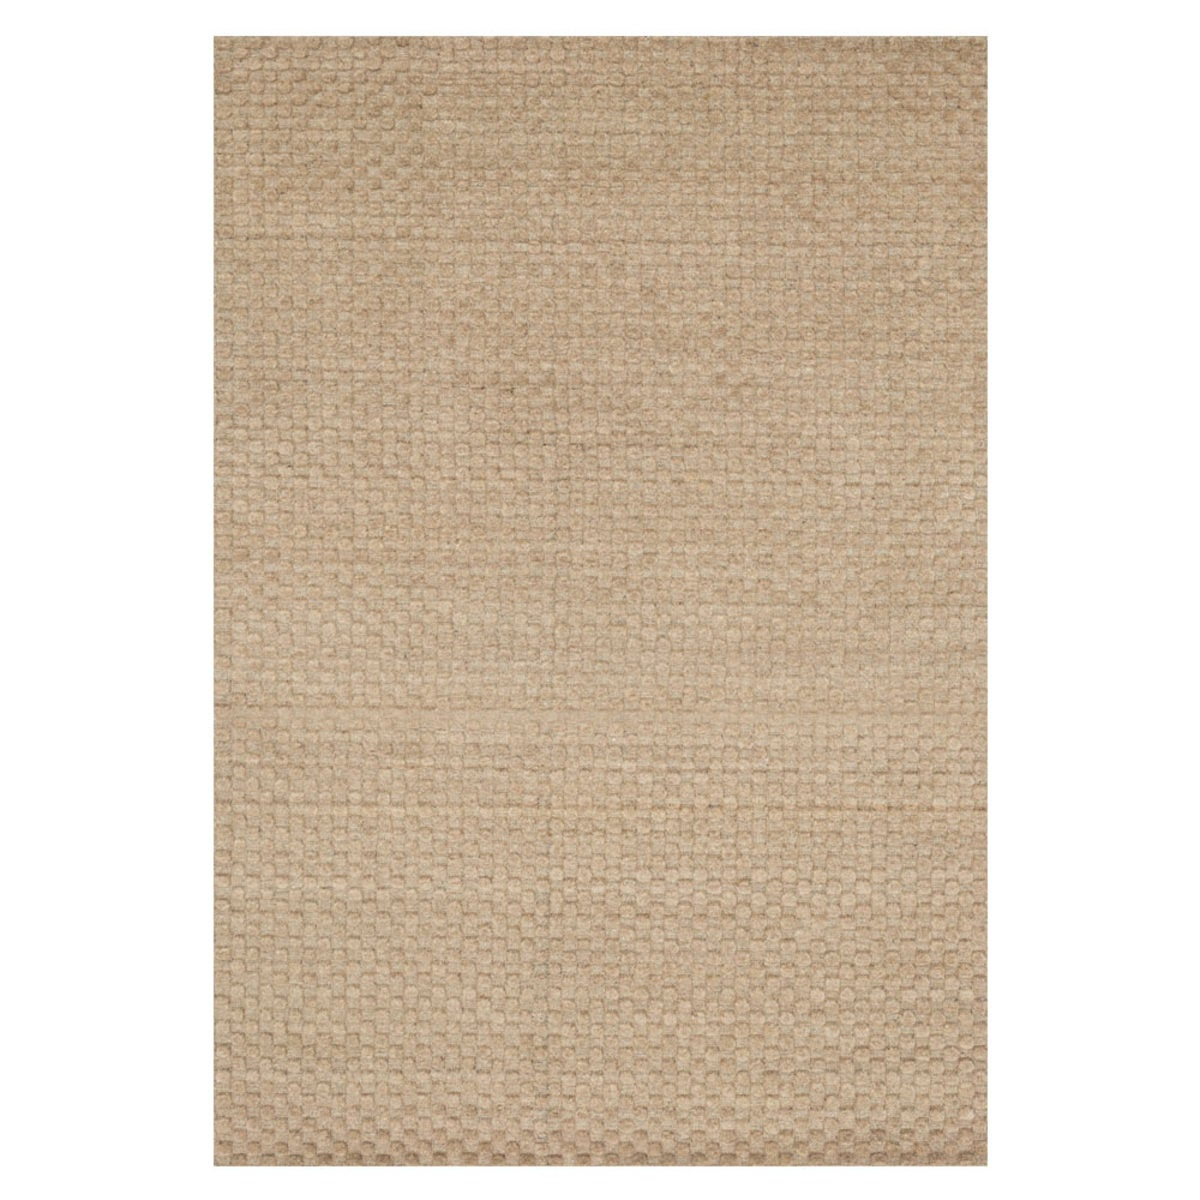 "Loloi Hadley Dotted Rug in Dune - 9'3"" x 13'  - Oatmeal"